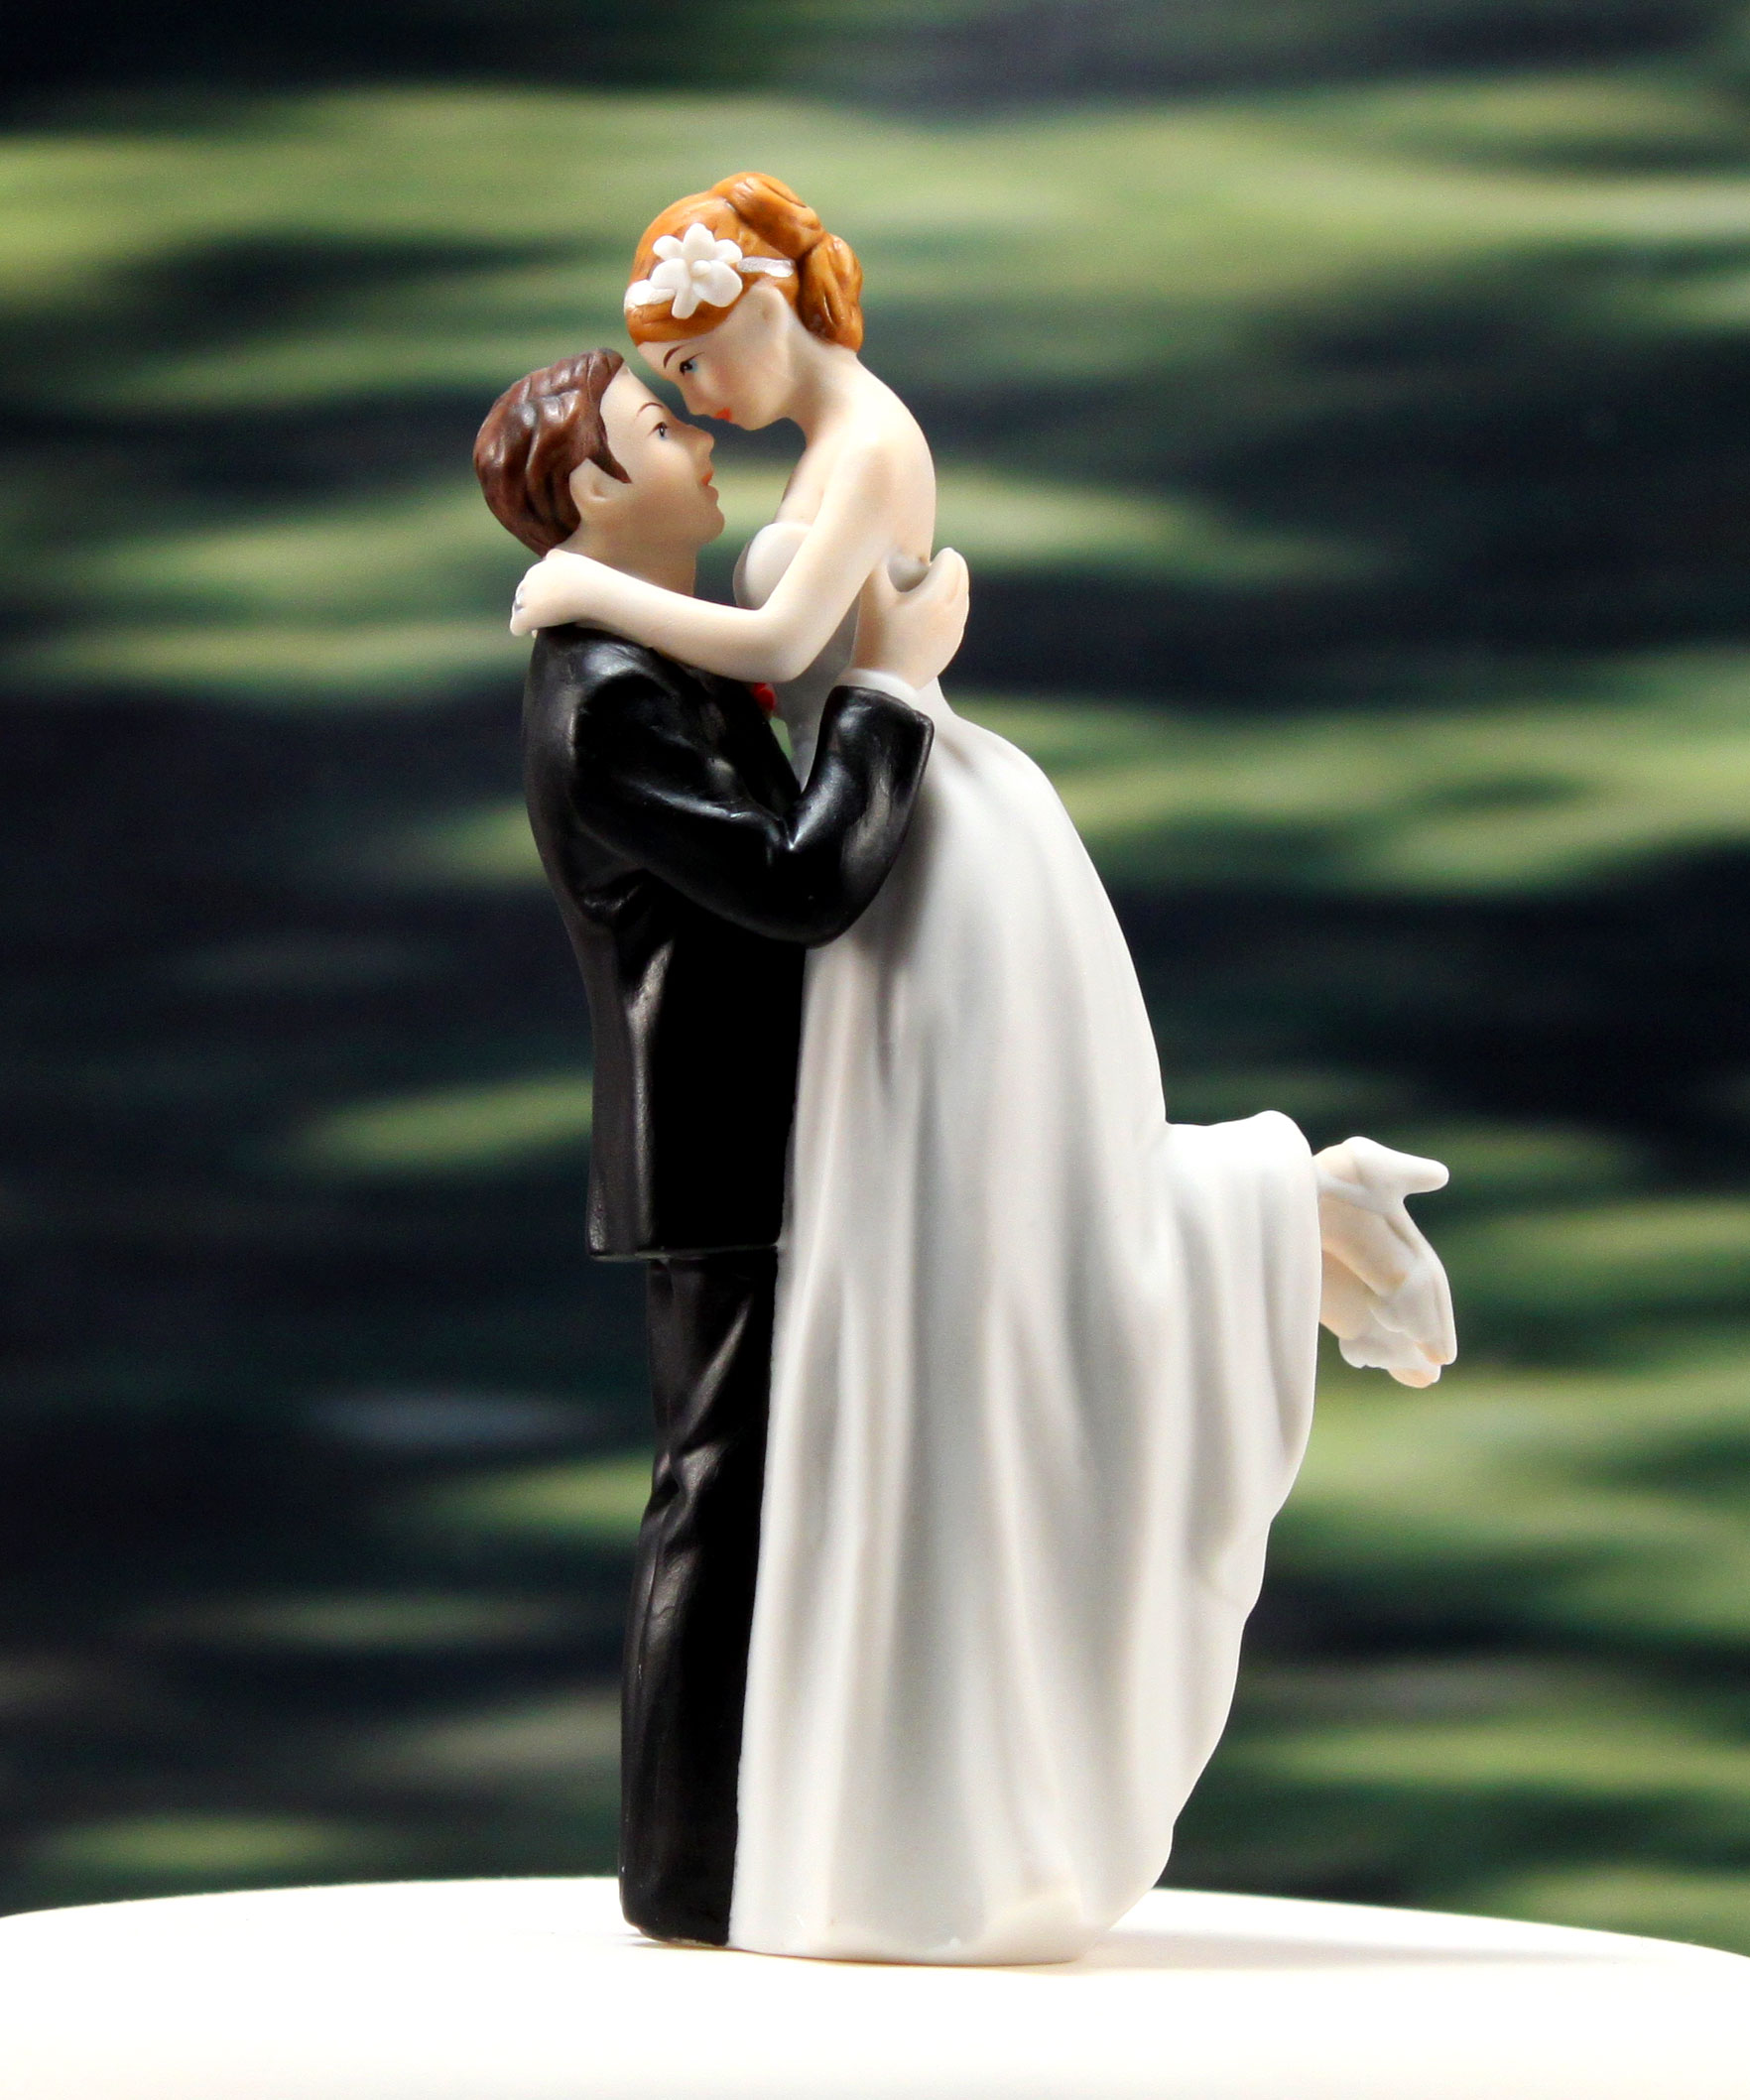 True Romance Bride and Groom Wedding Cake Topper Figurine